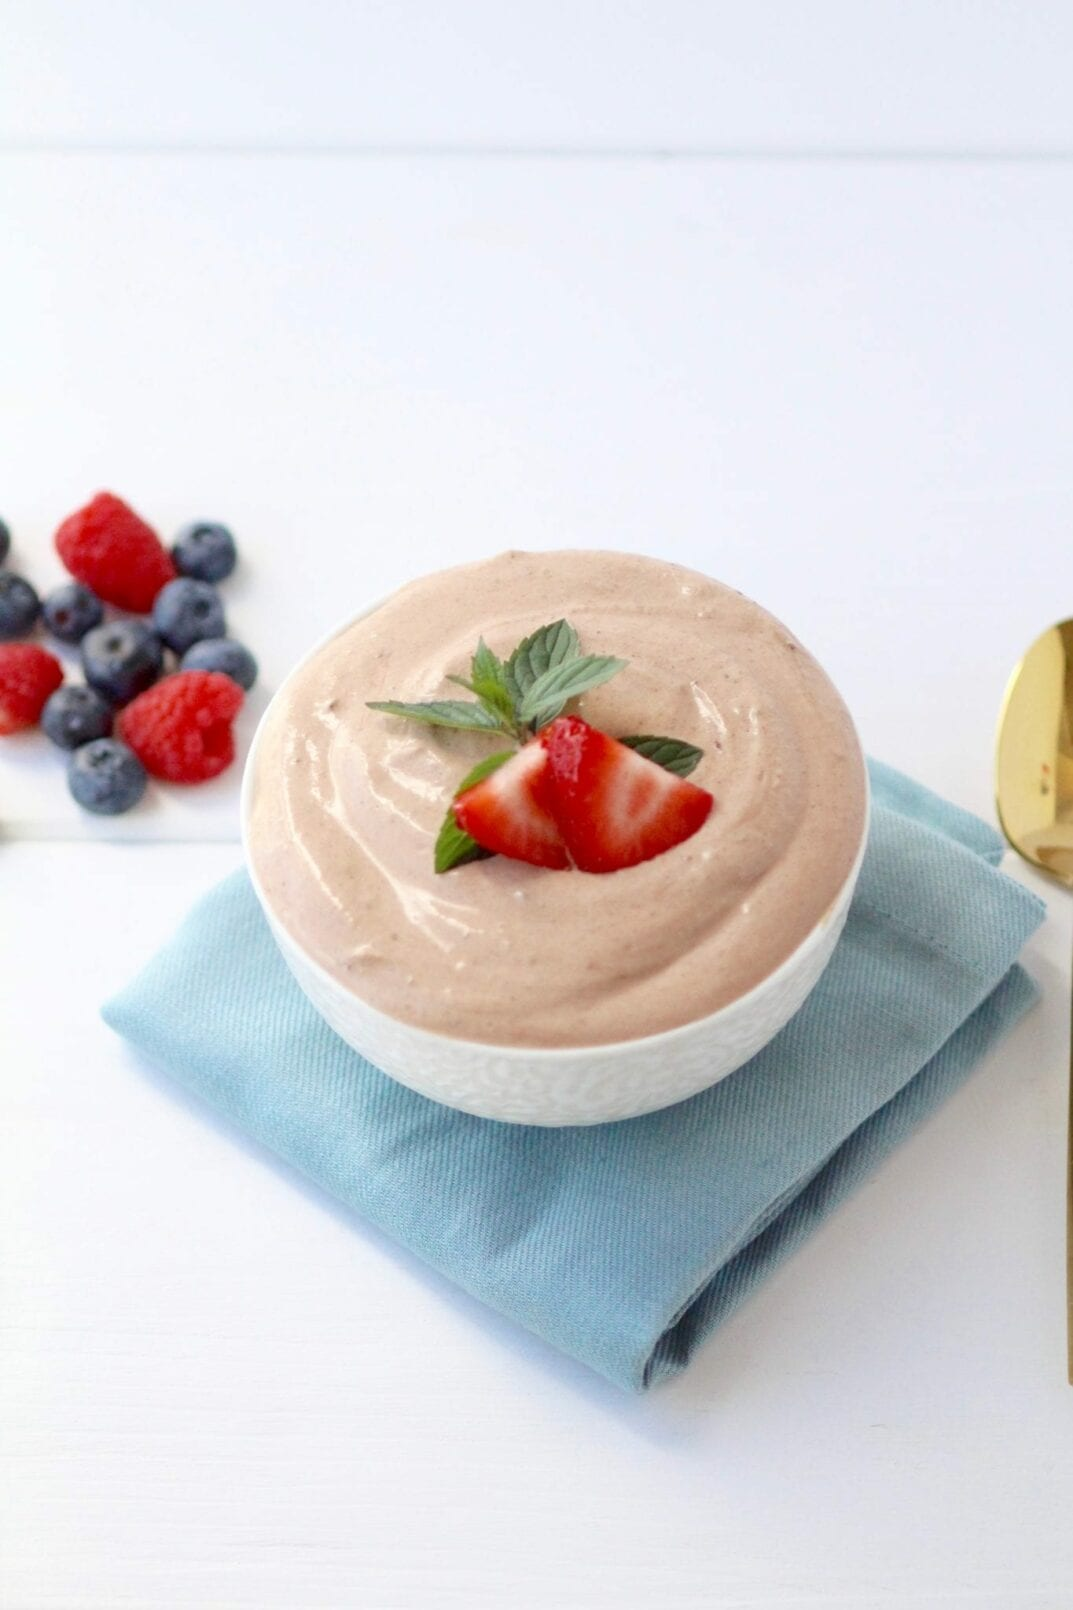 4-ingredient chocolate mousse